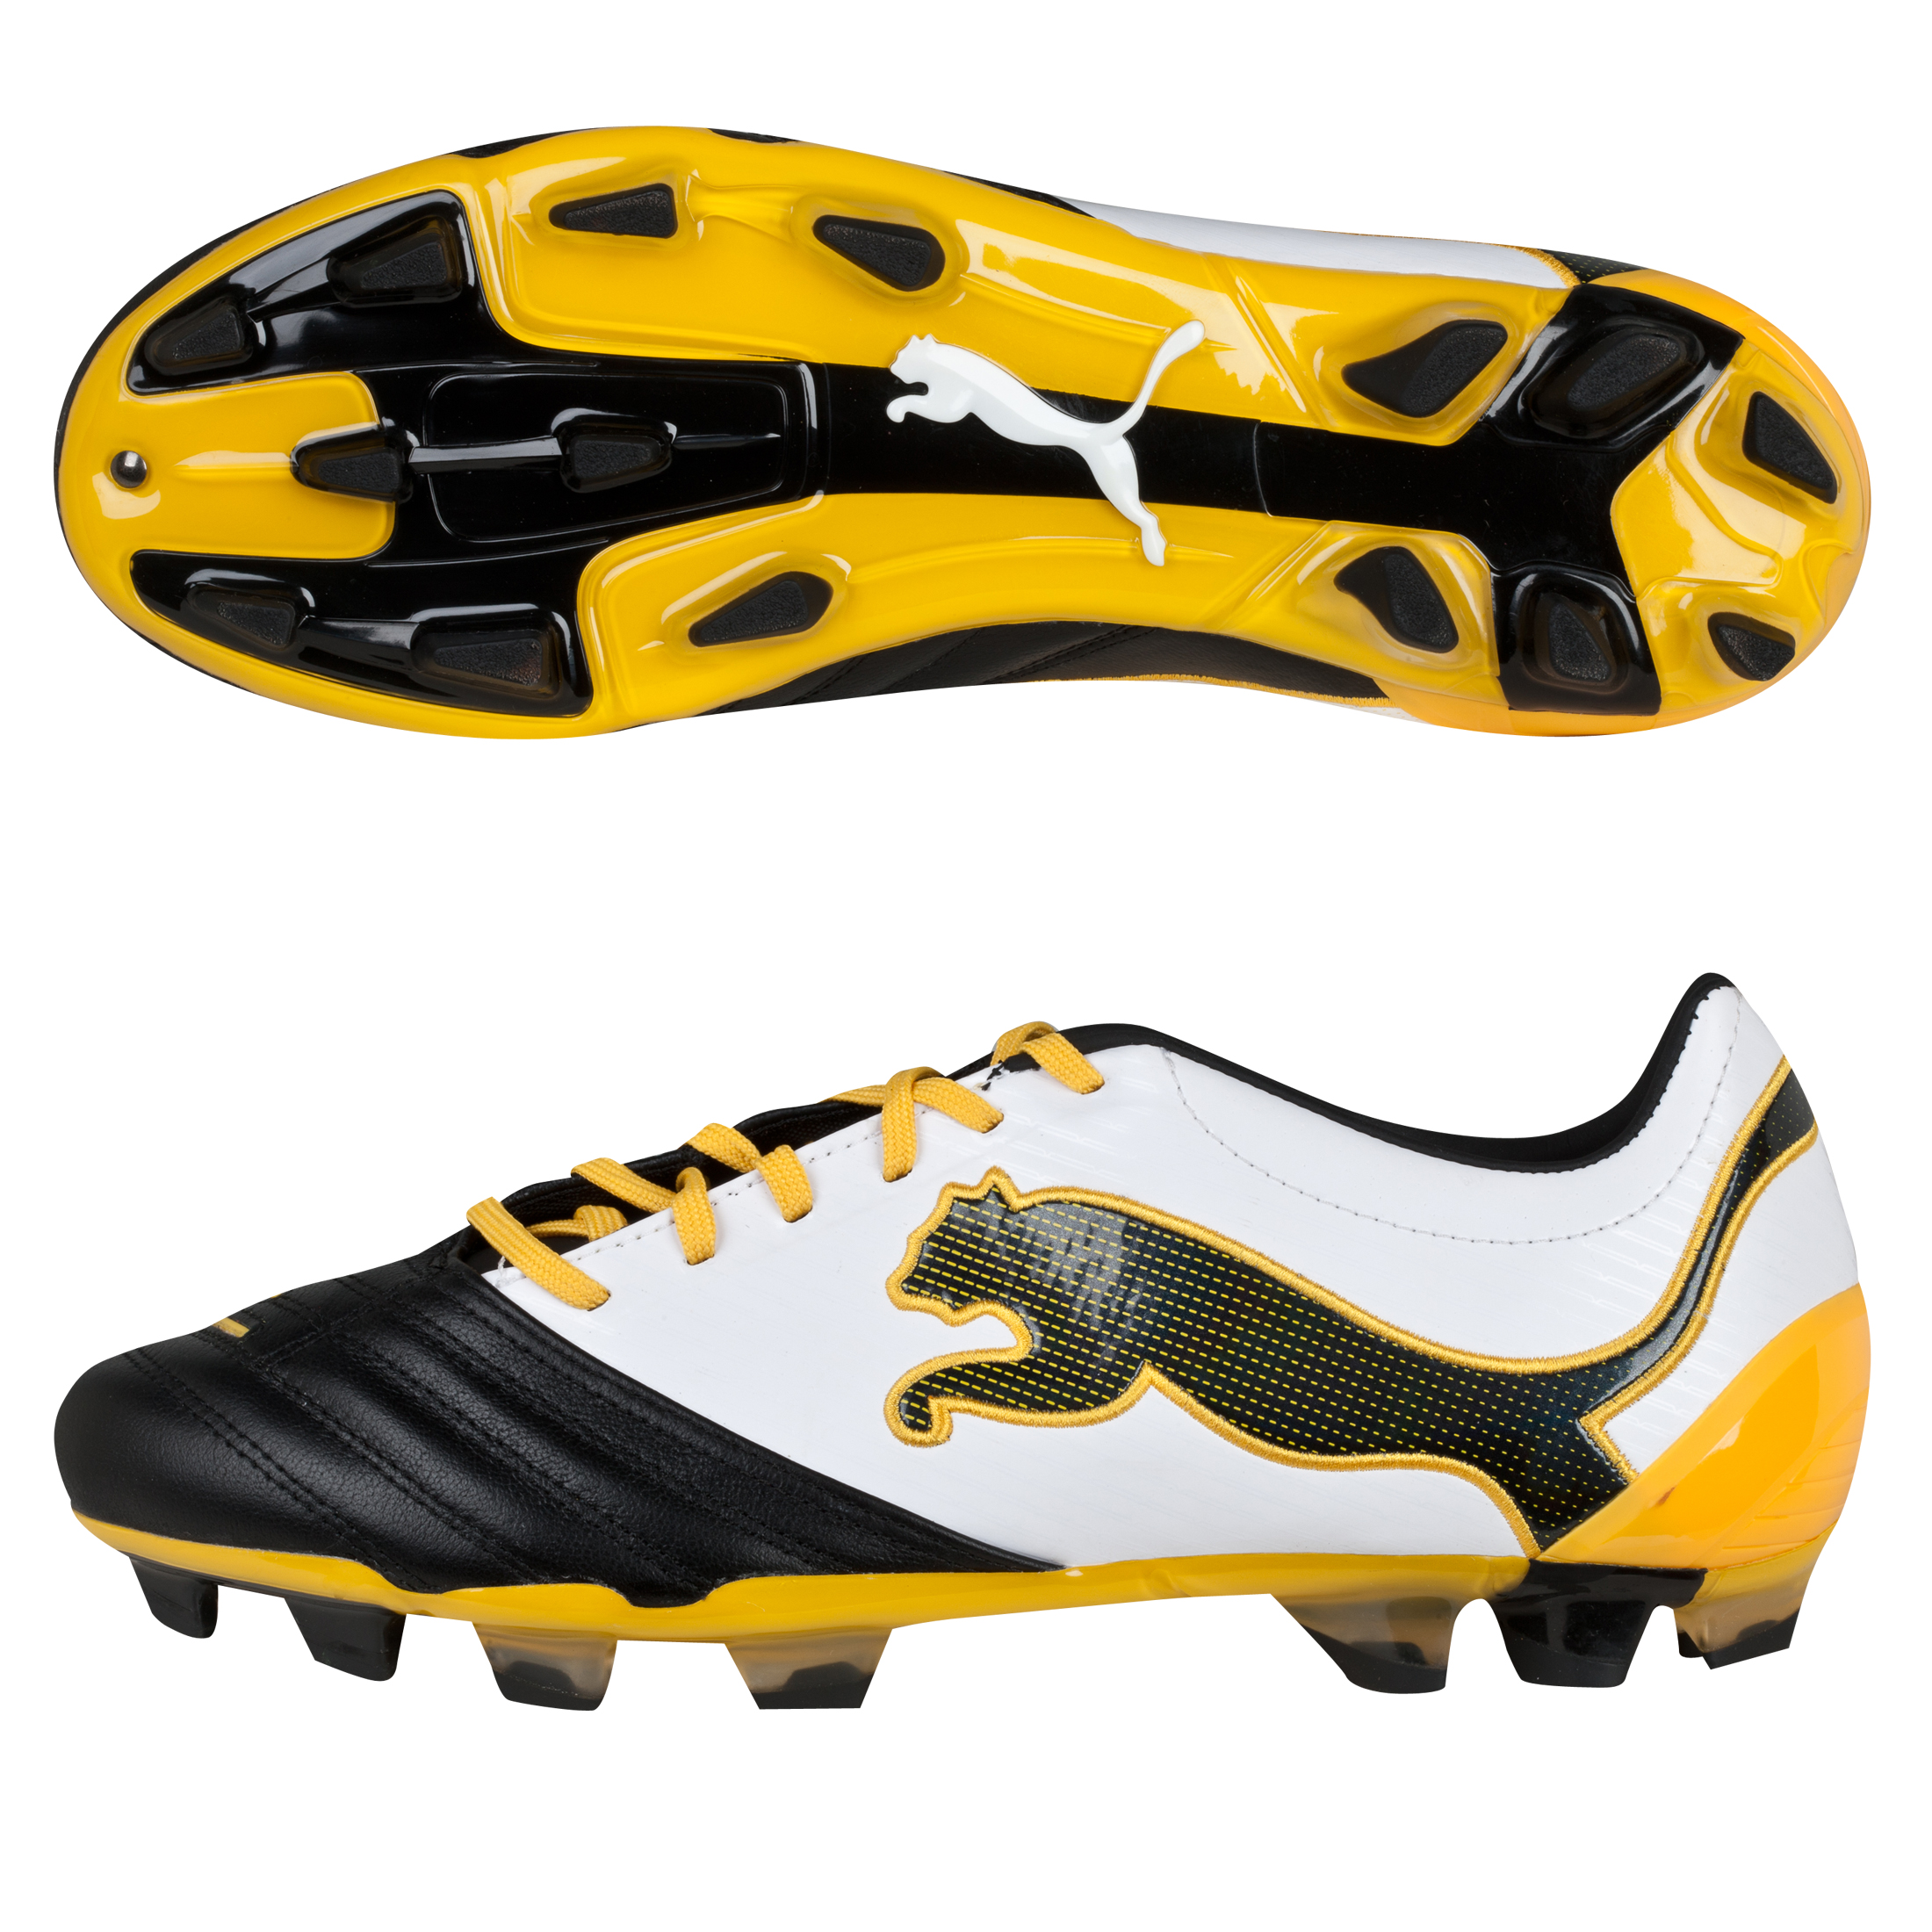 Puma PowerCat 2.12 Firm Ground Football Boots - Black/White/Team Yellow